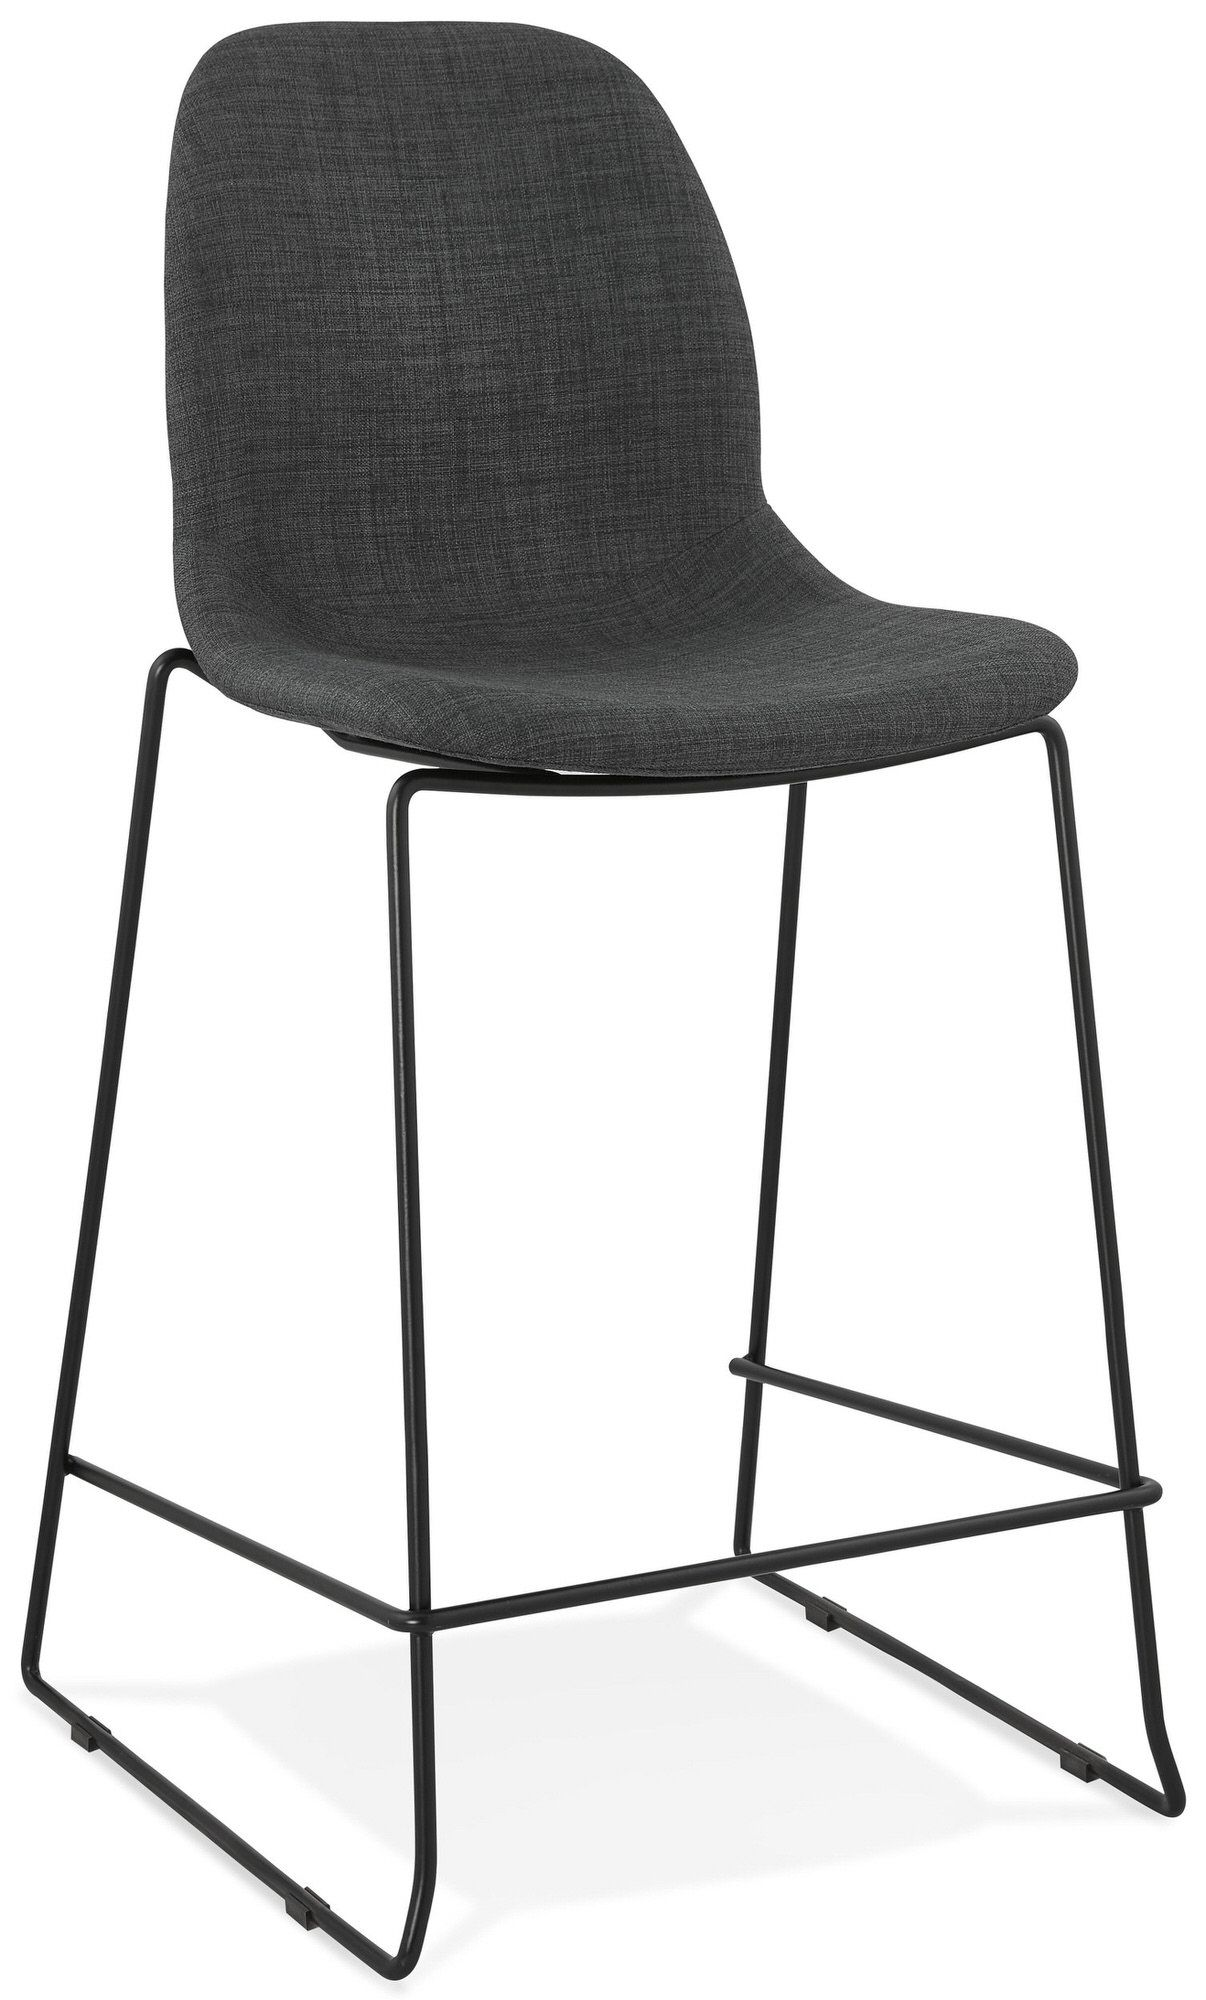 Tabouret De Bar Design Cooper Mini Kokoon Design Gris En 2020 Tabouret De Bar Design Chaise Bar Et Tabouret